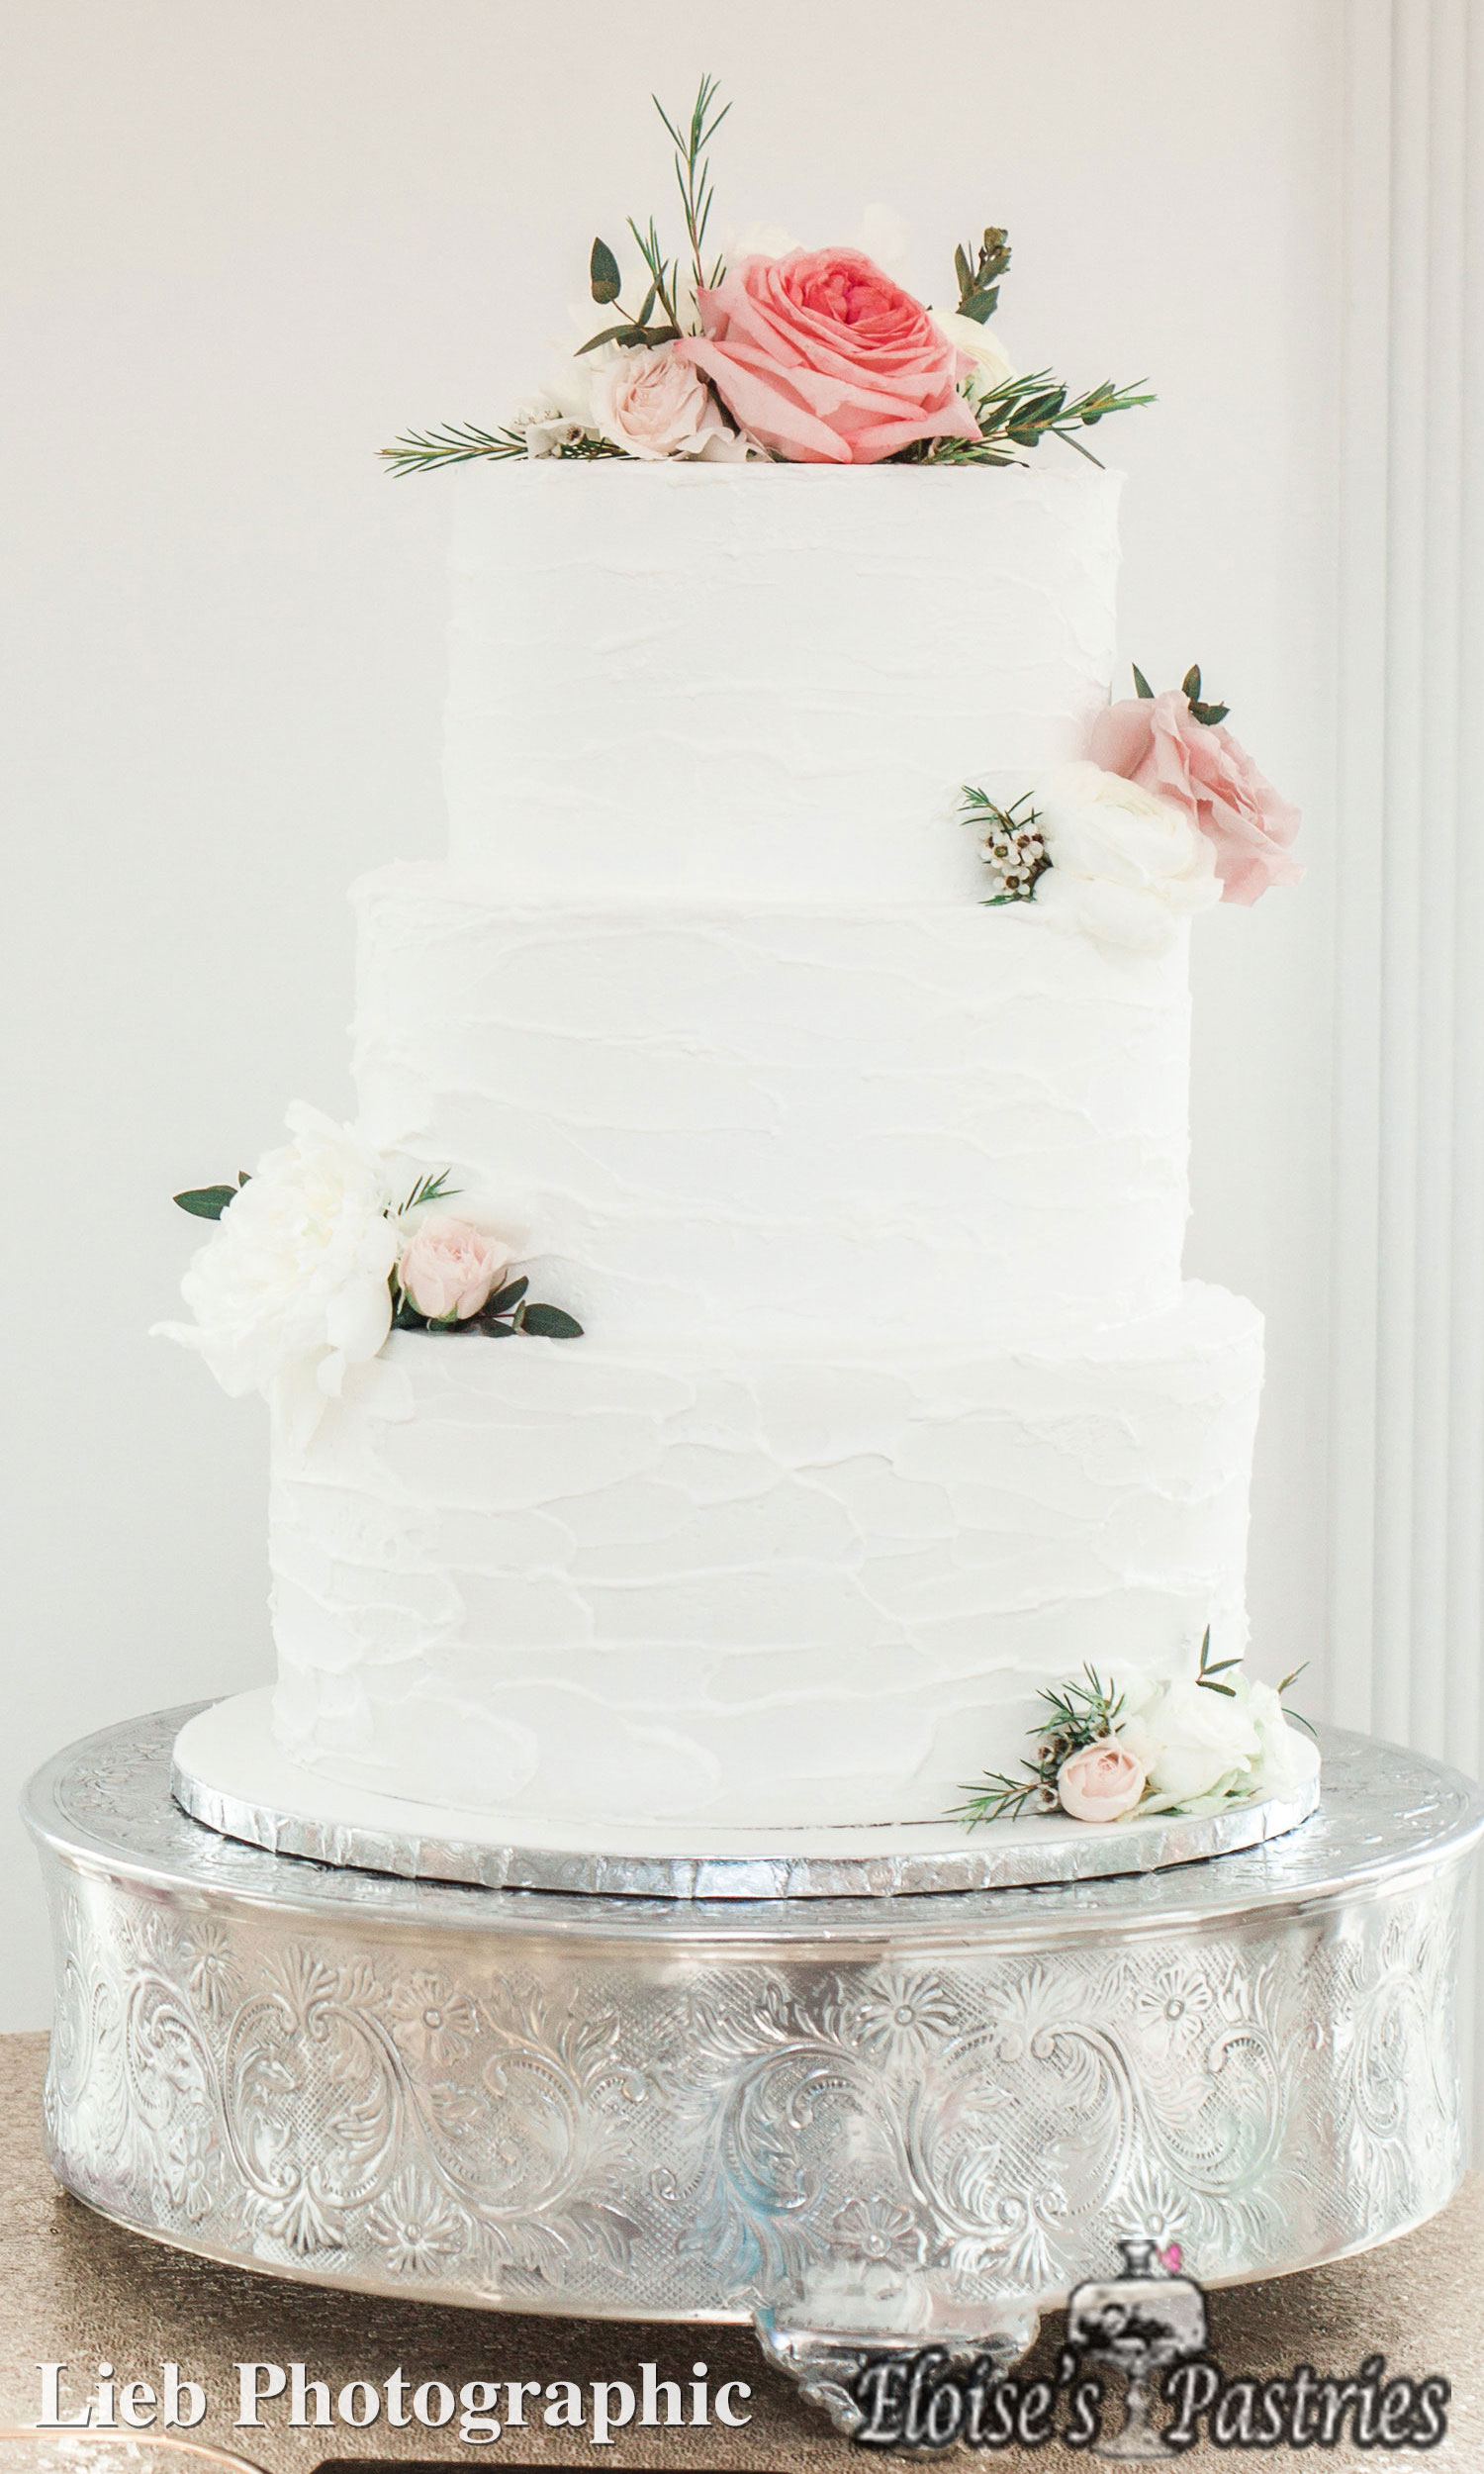 Simple White Textured Floral Cake